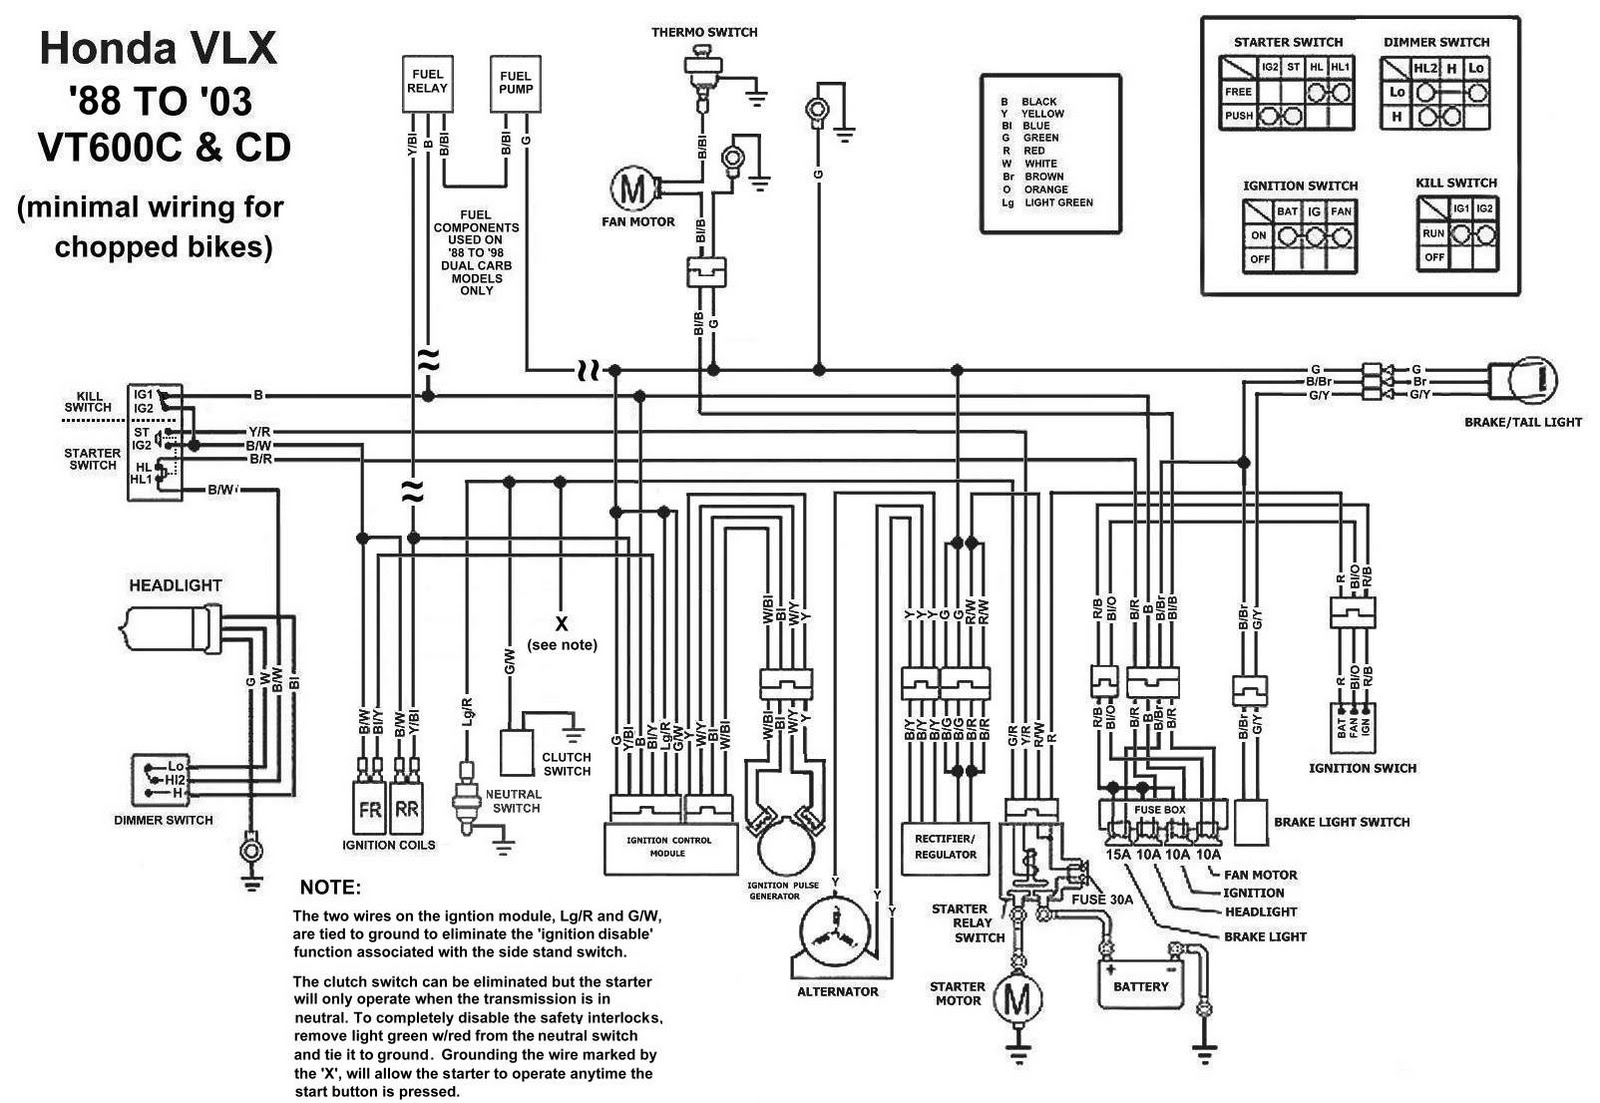 1983 Honda Shadow Wiring Diagram http://tommyjeanbrutalcustoms.blogspot.com/2011/09/honda-shadow-vt600cd-chopped-wiring.html